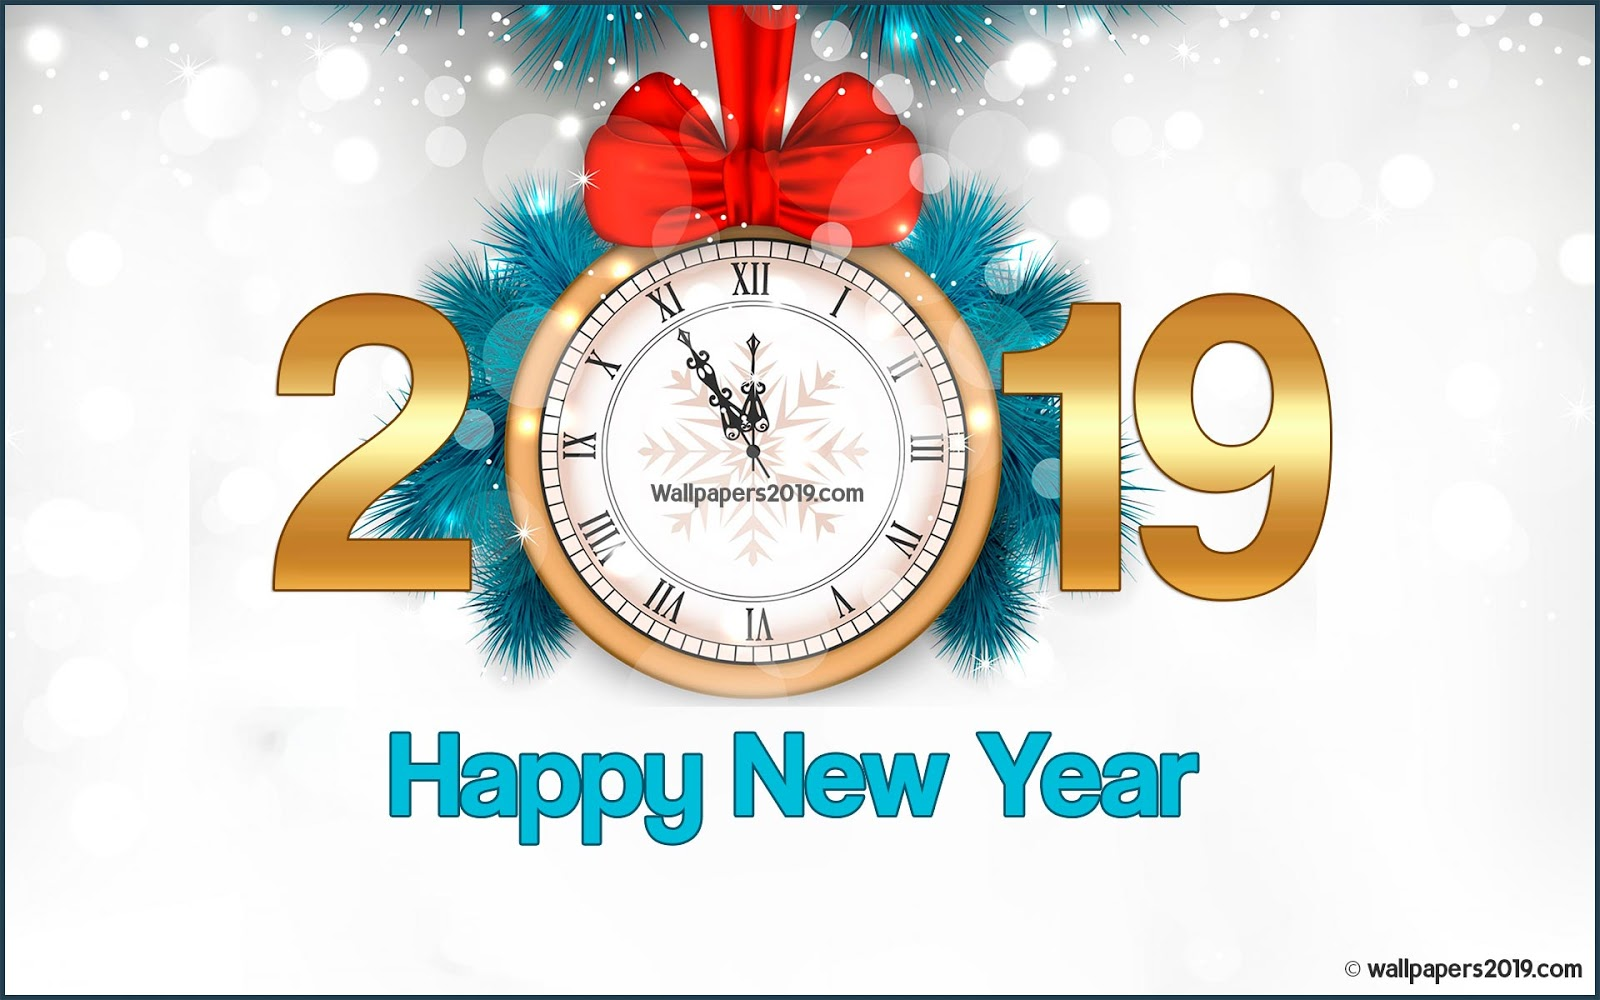 Wallpaper 2019 happy new year HD